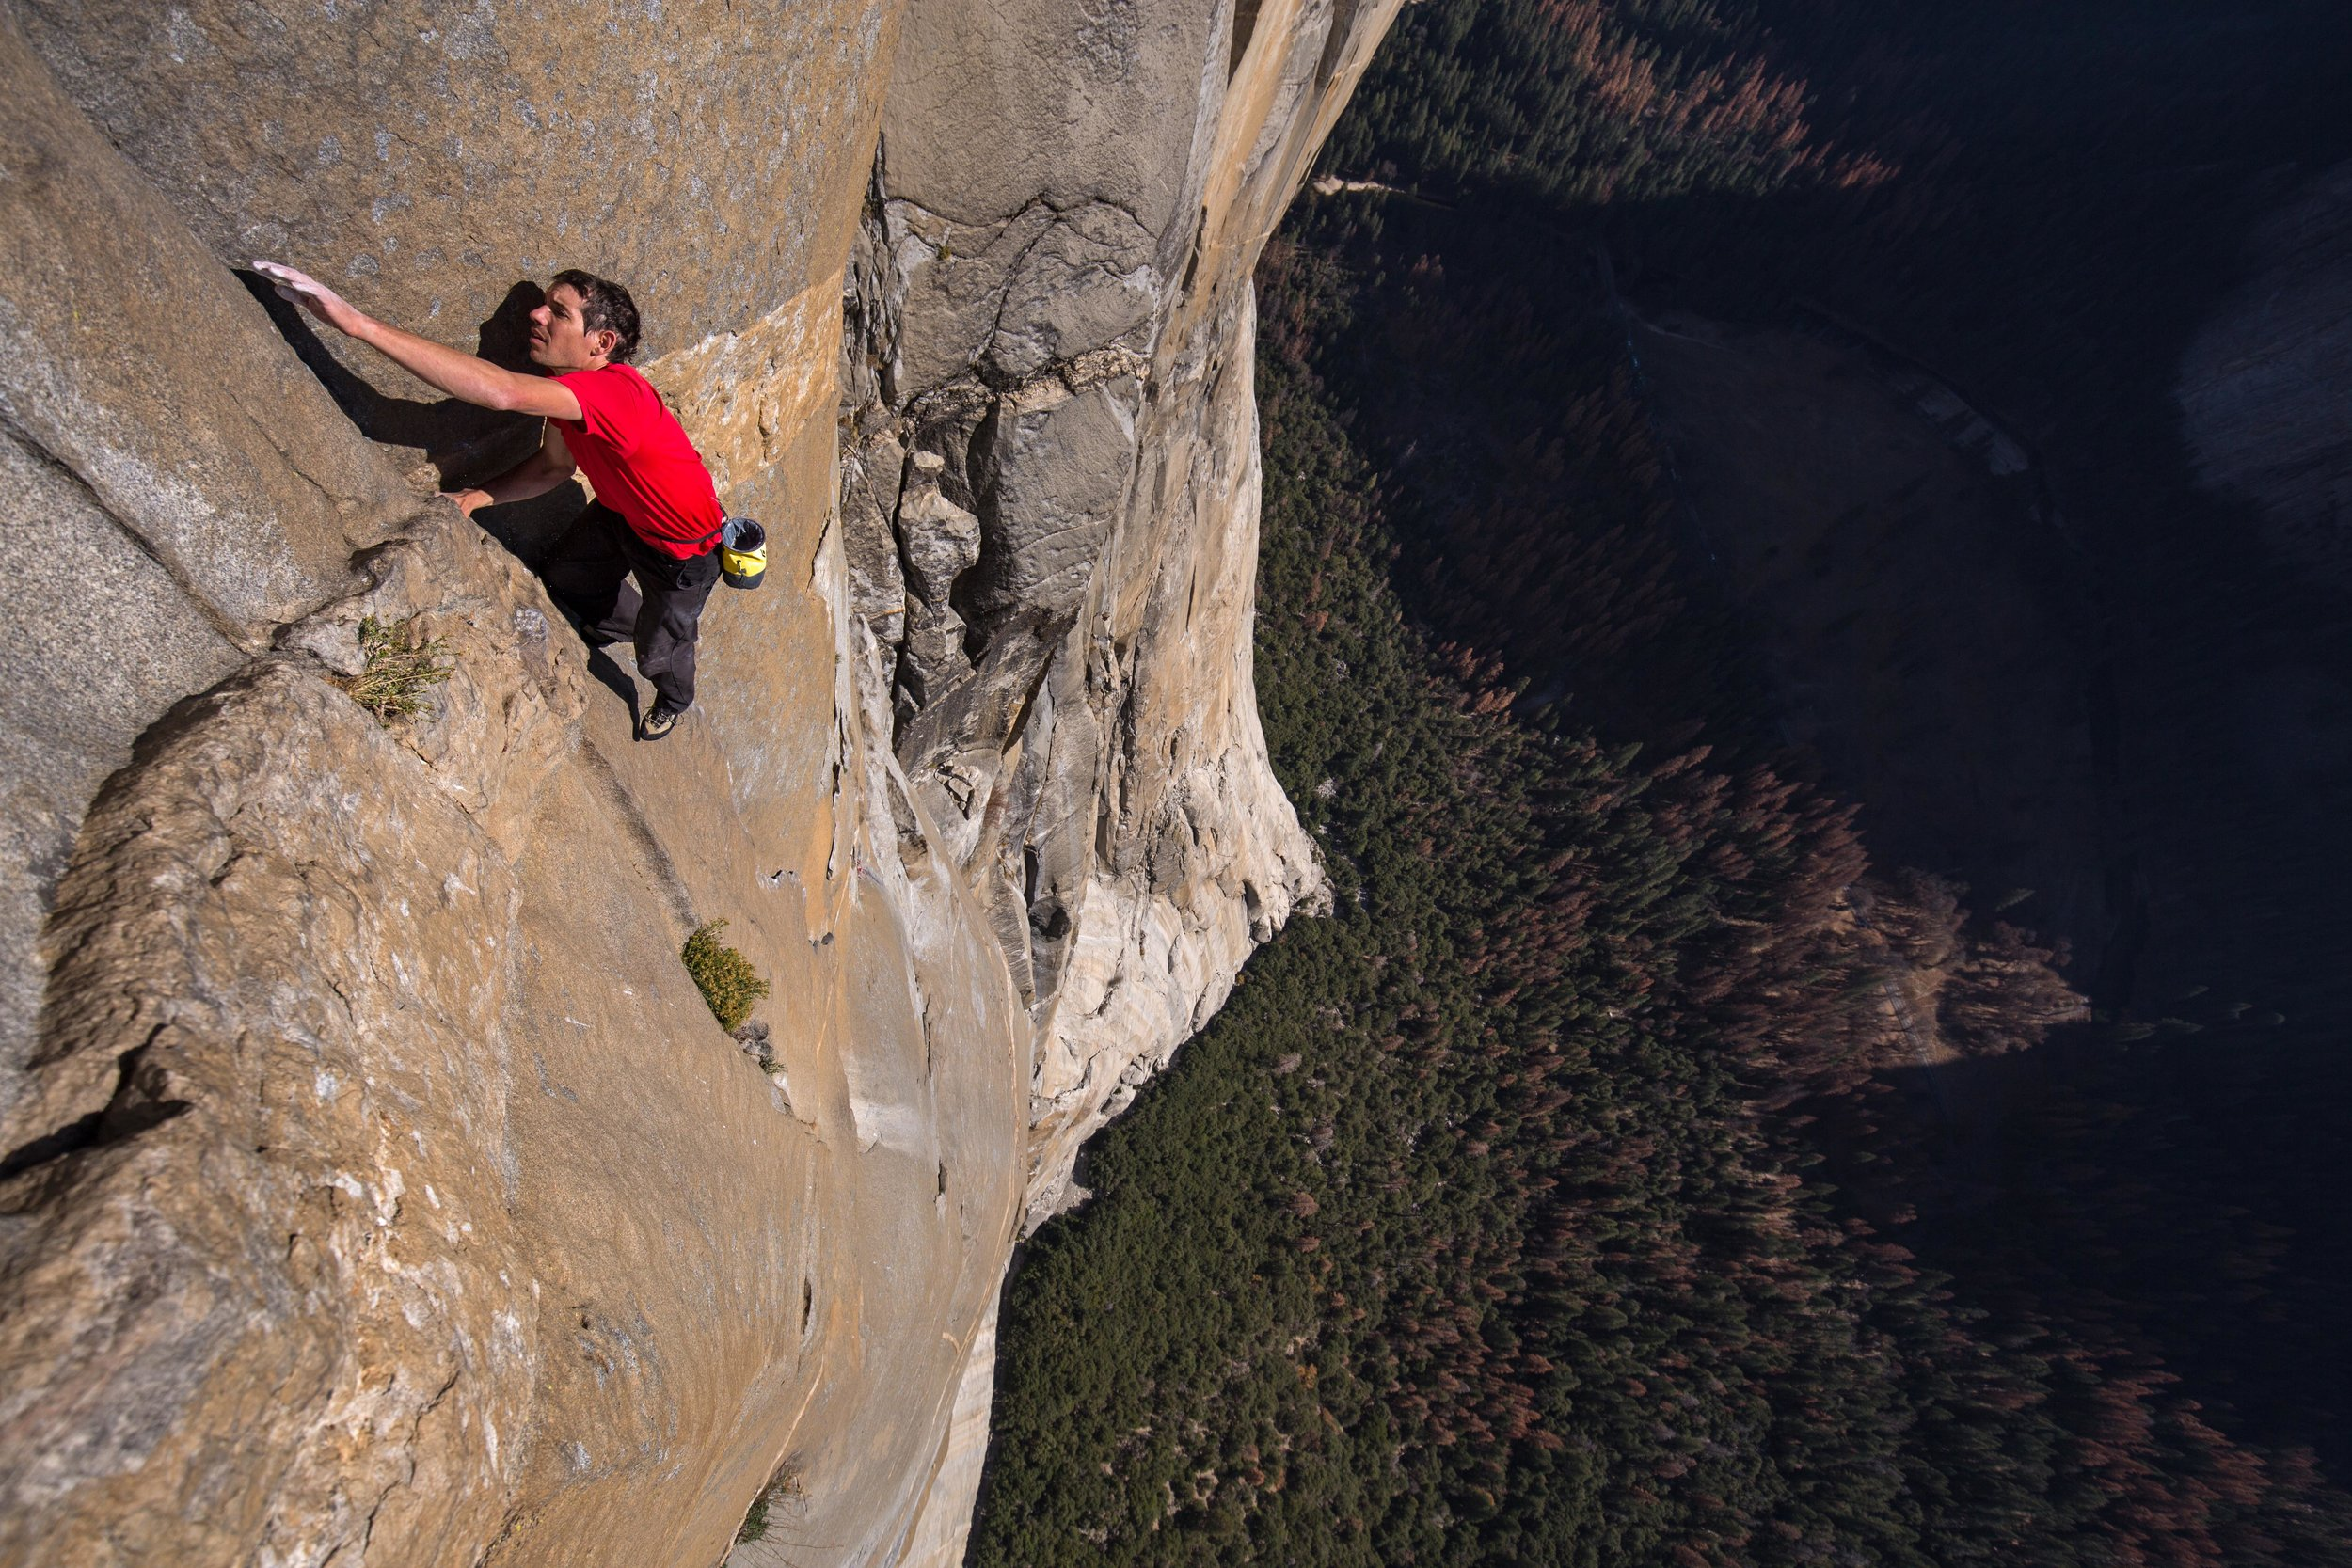 Photo by Jimmy Chin for National Geographic